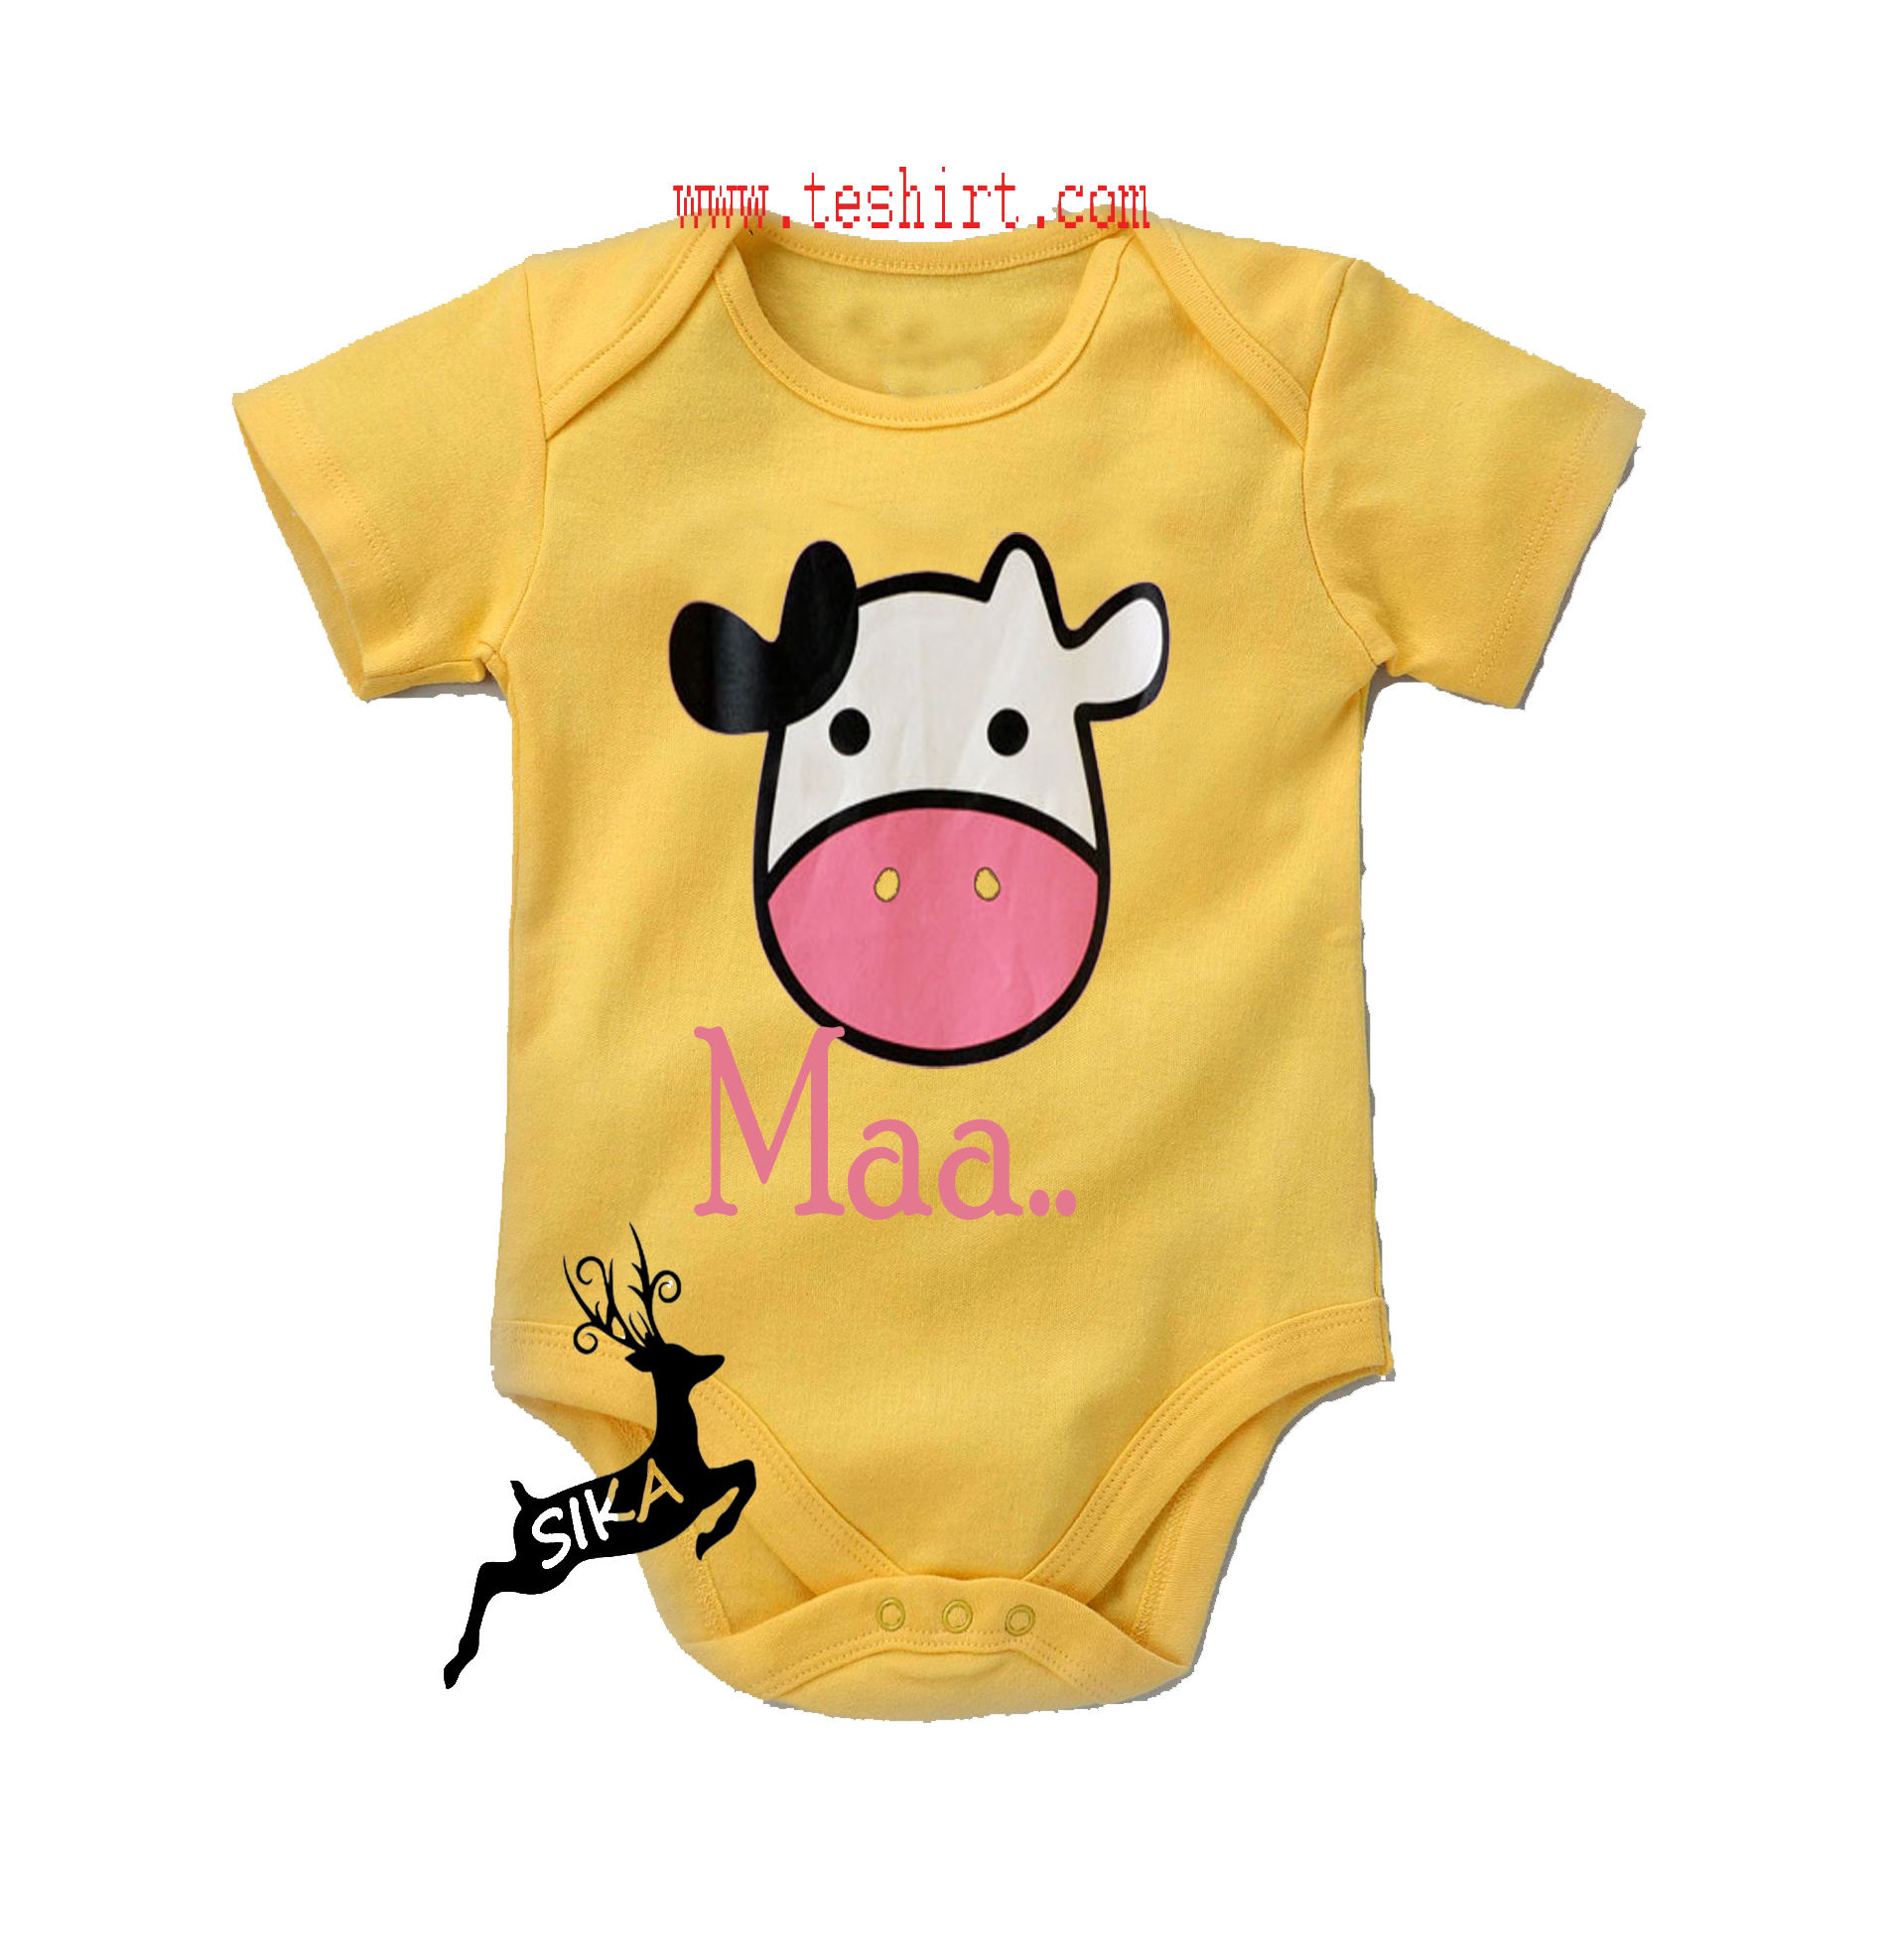 indian manufacturer tirupur baby garments manufacturer Children summer clothes Cartoon printed short sleeve baby romper